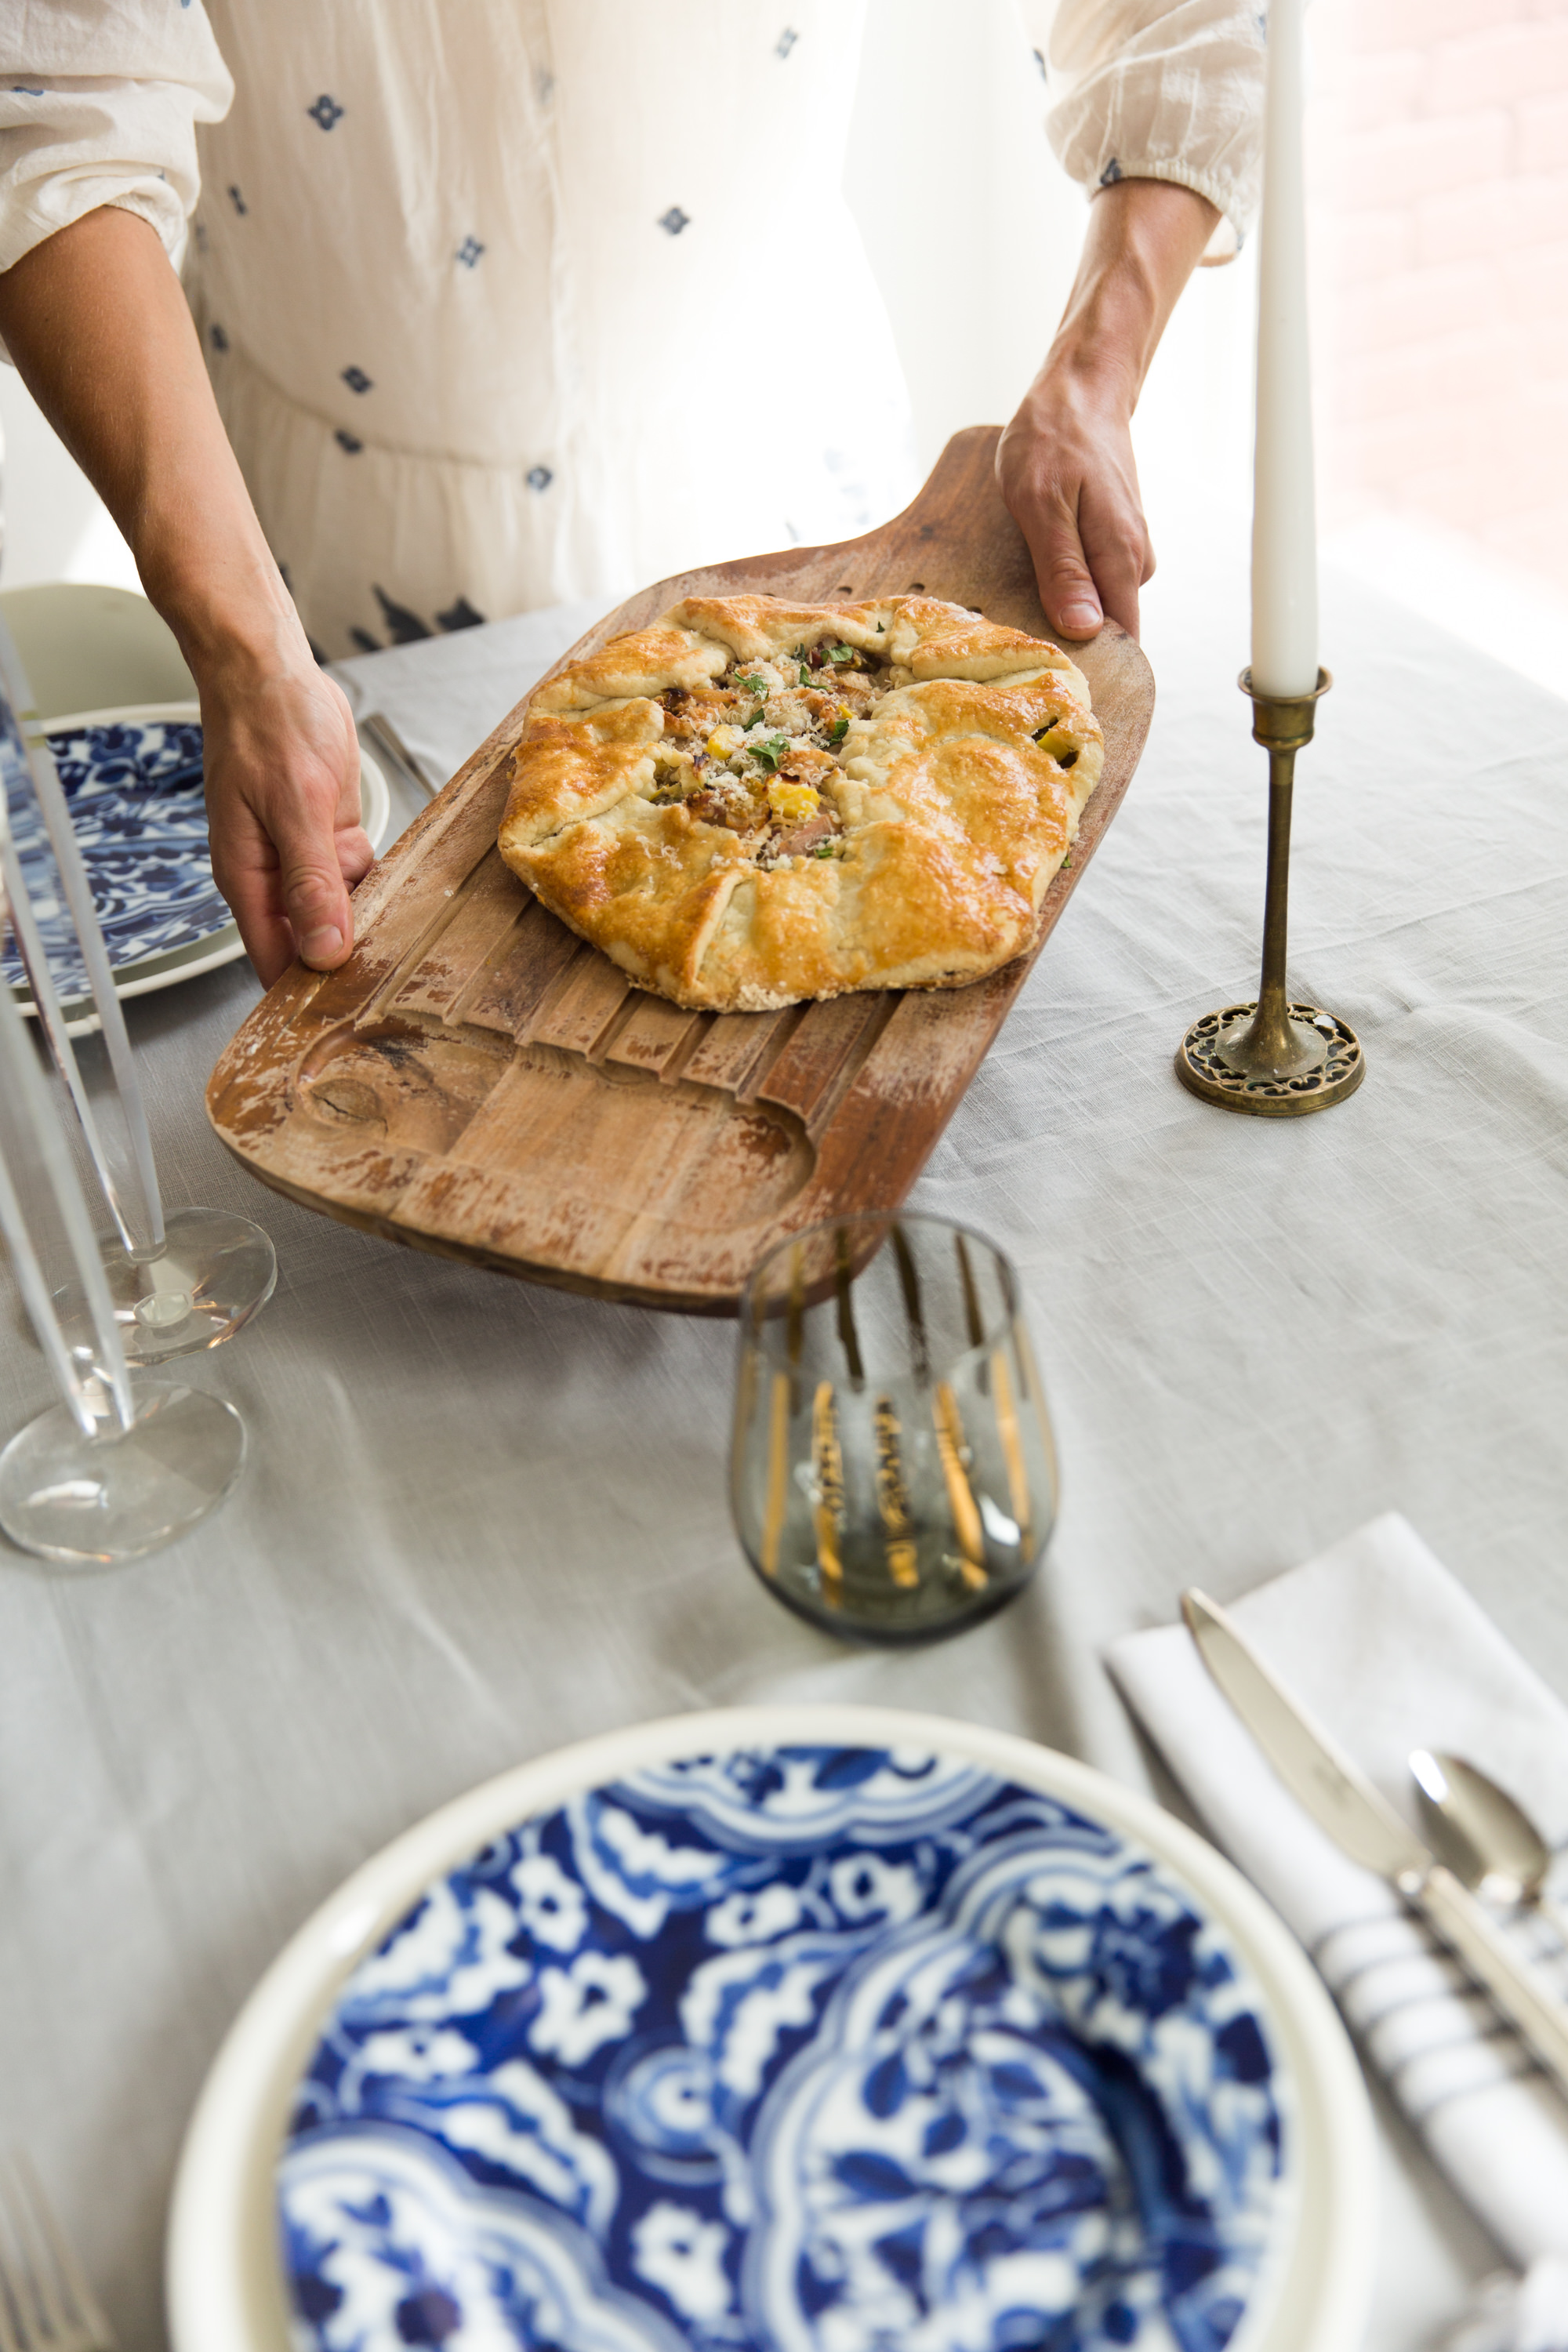 Placing Galette On Table